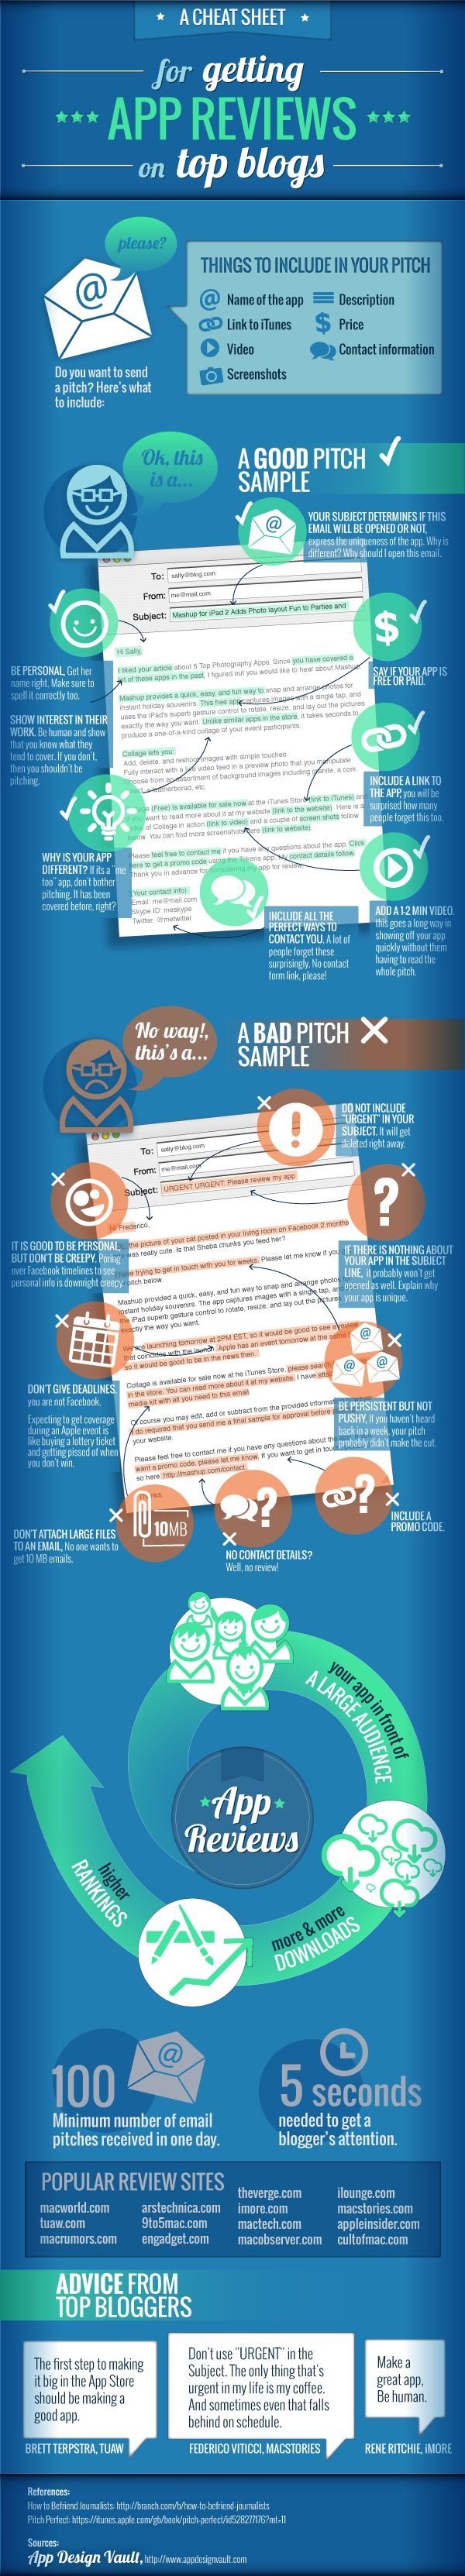 Best Cheat Sheet For Getting App Reviews [Infographic]